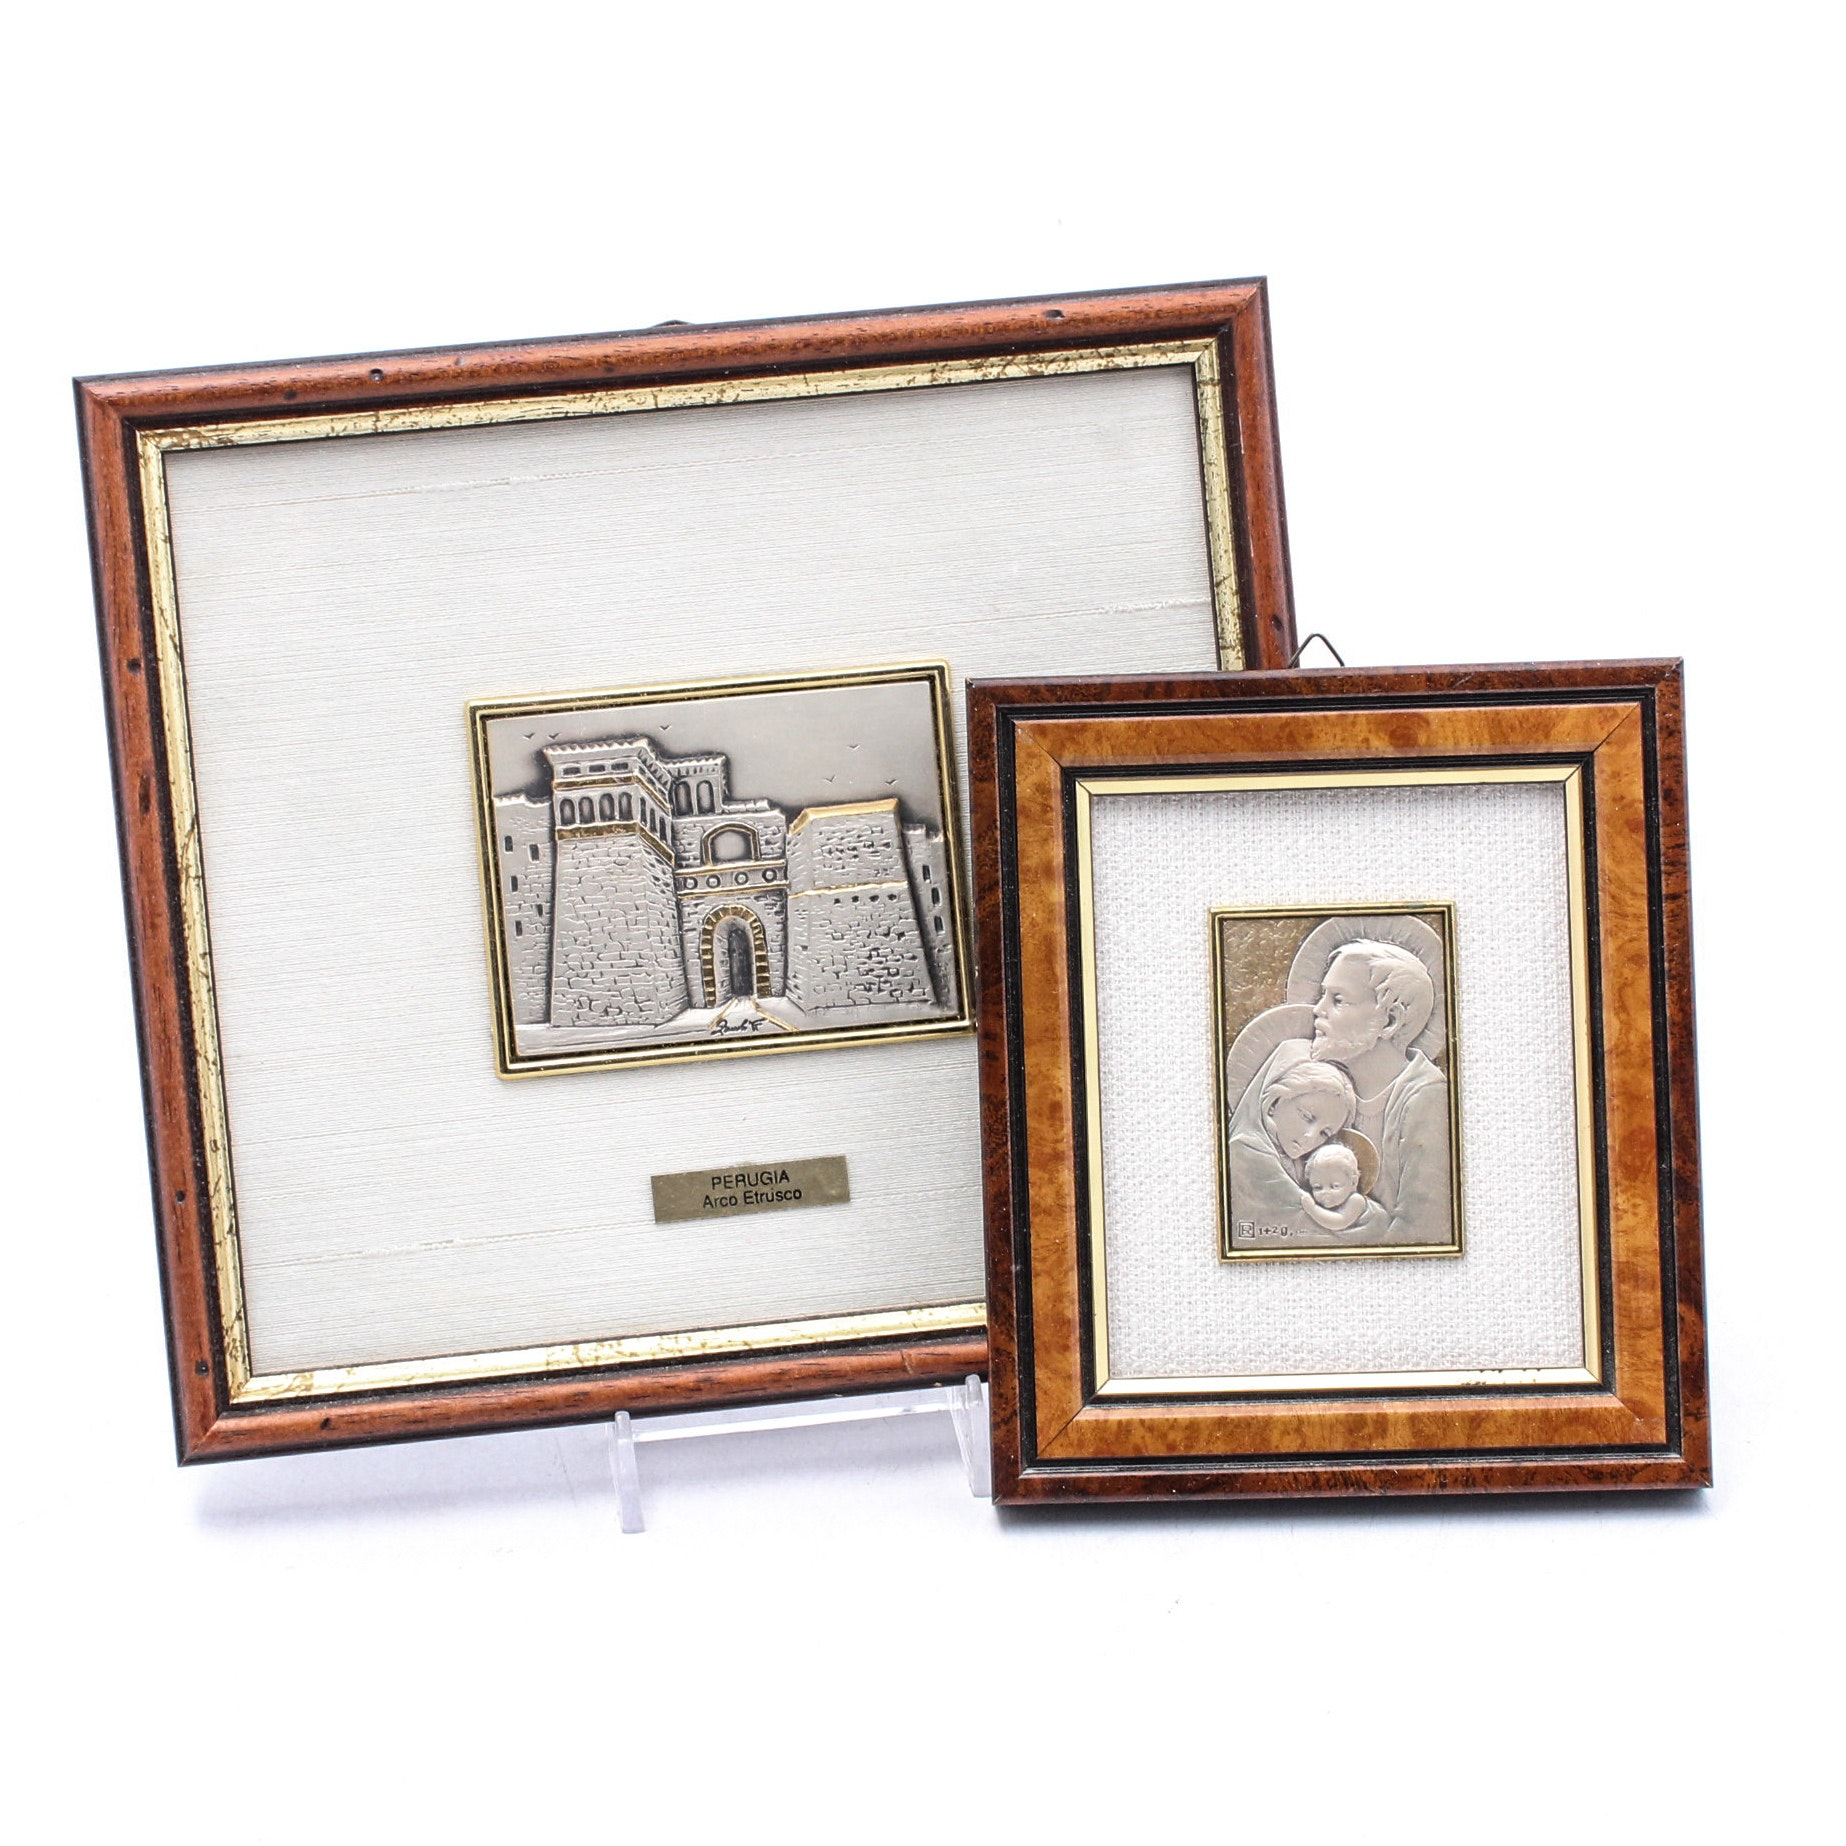 """Sterling Silver and Gold Leaf """"Perugia, Arco Etrusco"""" and Holy Family"""